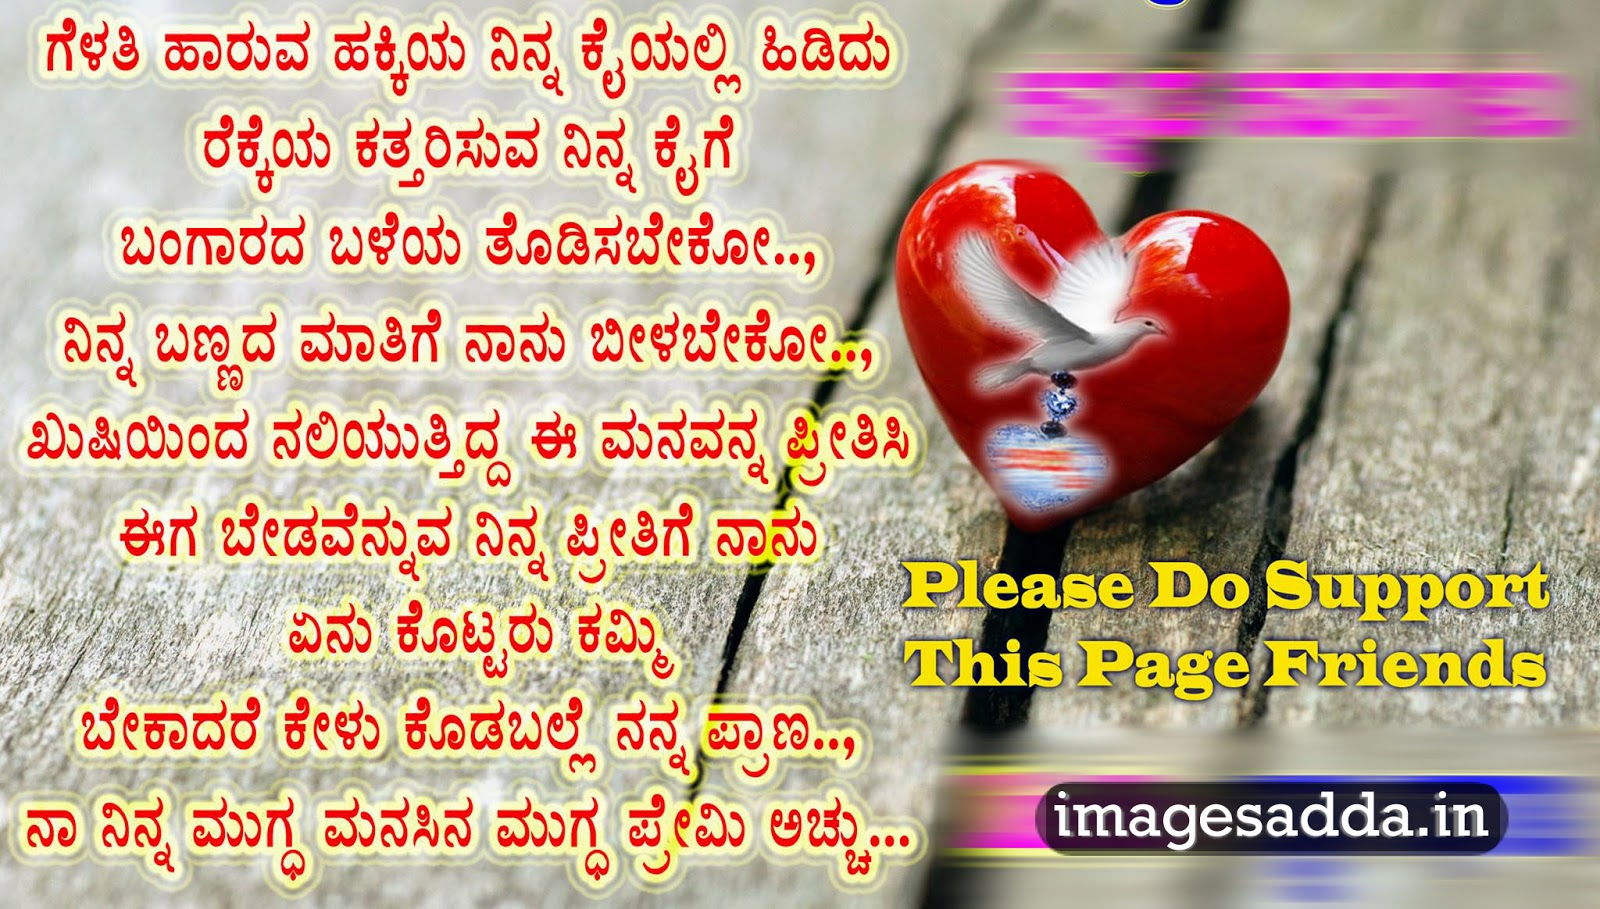 Kannada love quotes images 1381439 joyfulvoicesfo thecheapjerseys Image collections